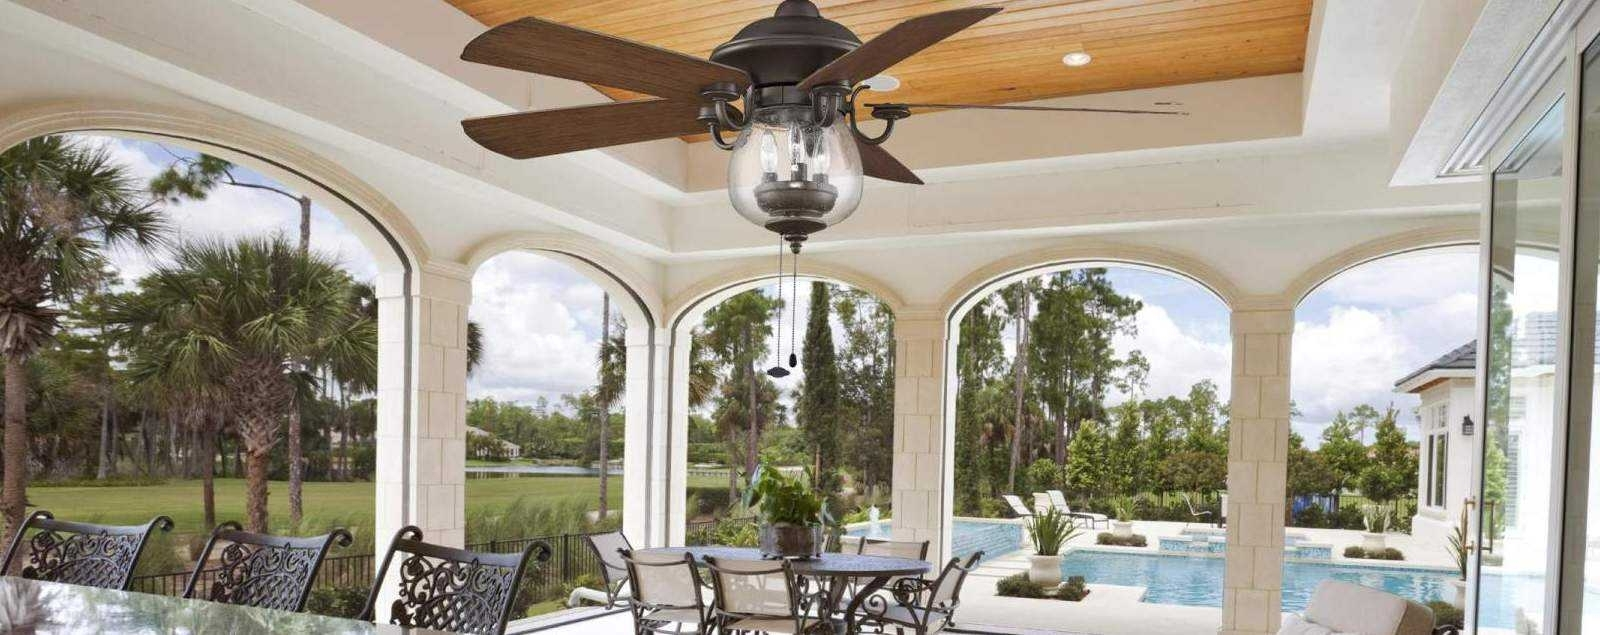 Recent Patio Ceiling Fans With Lights Images Also Enchanting Porch Outside Pertaining To Outdoor Patio Ceiling Fans With Lights (View 5 of 20)